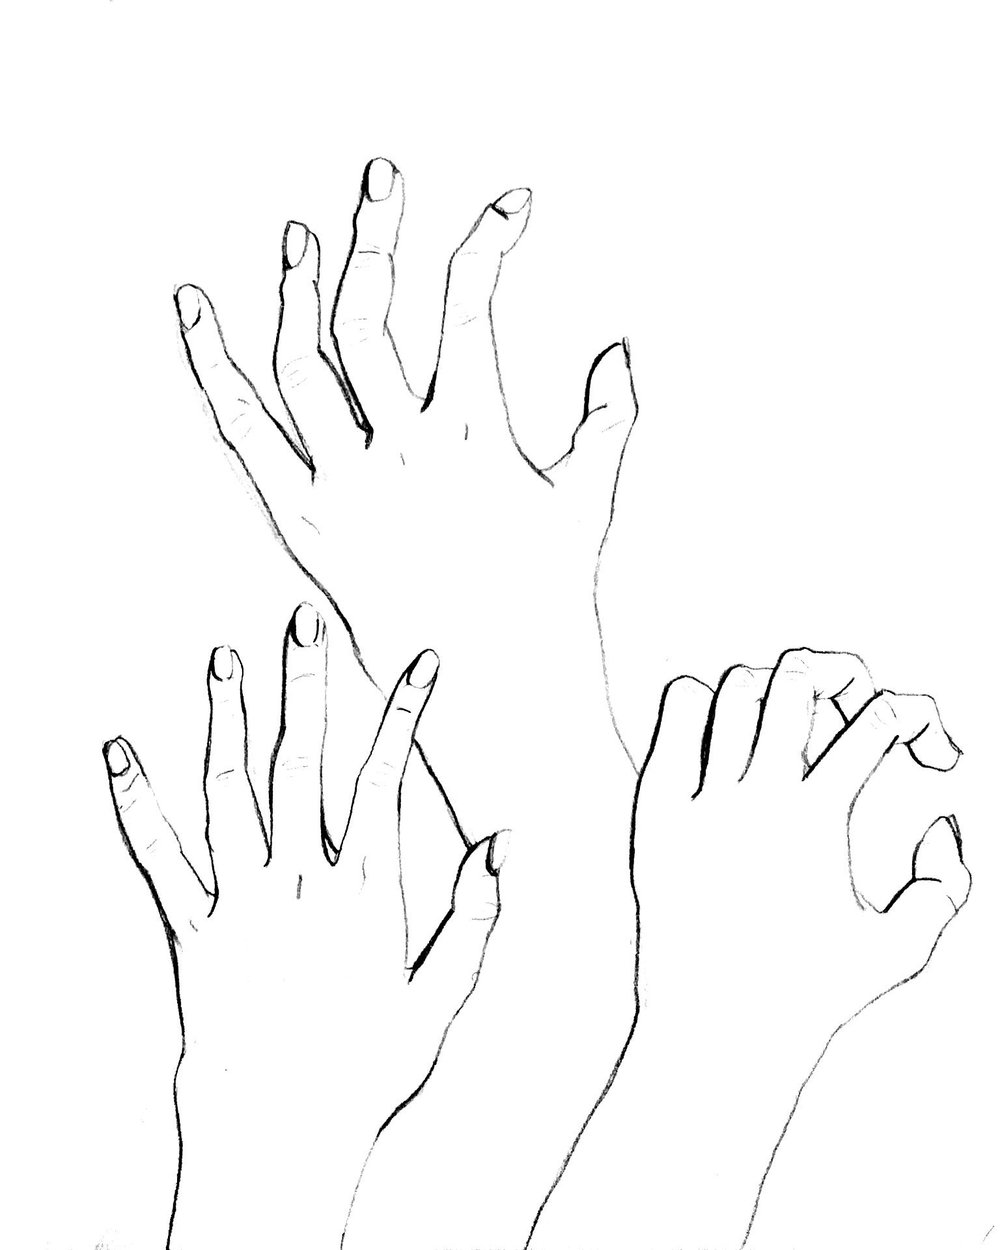 and my hands ✋